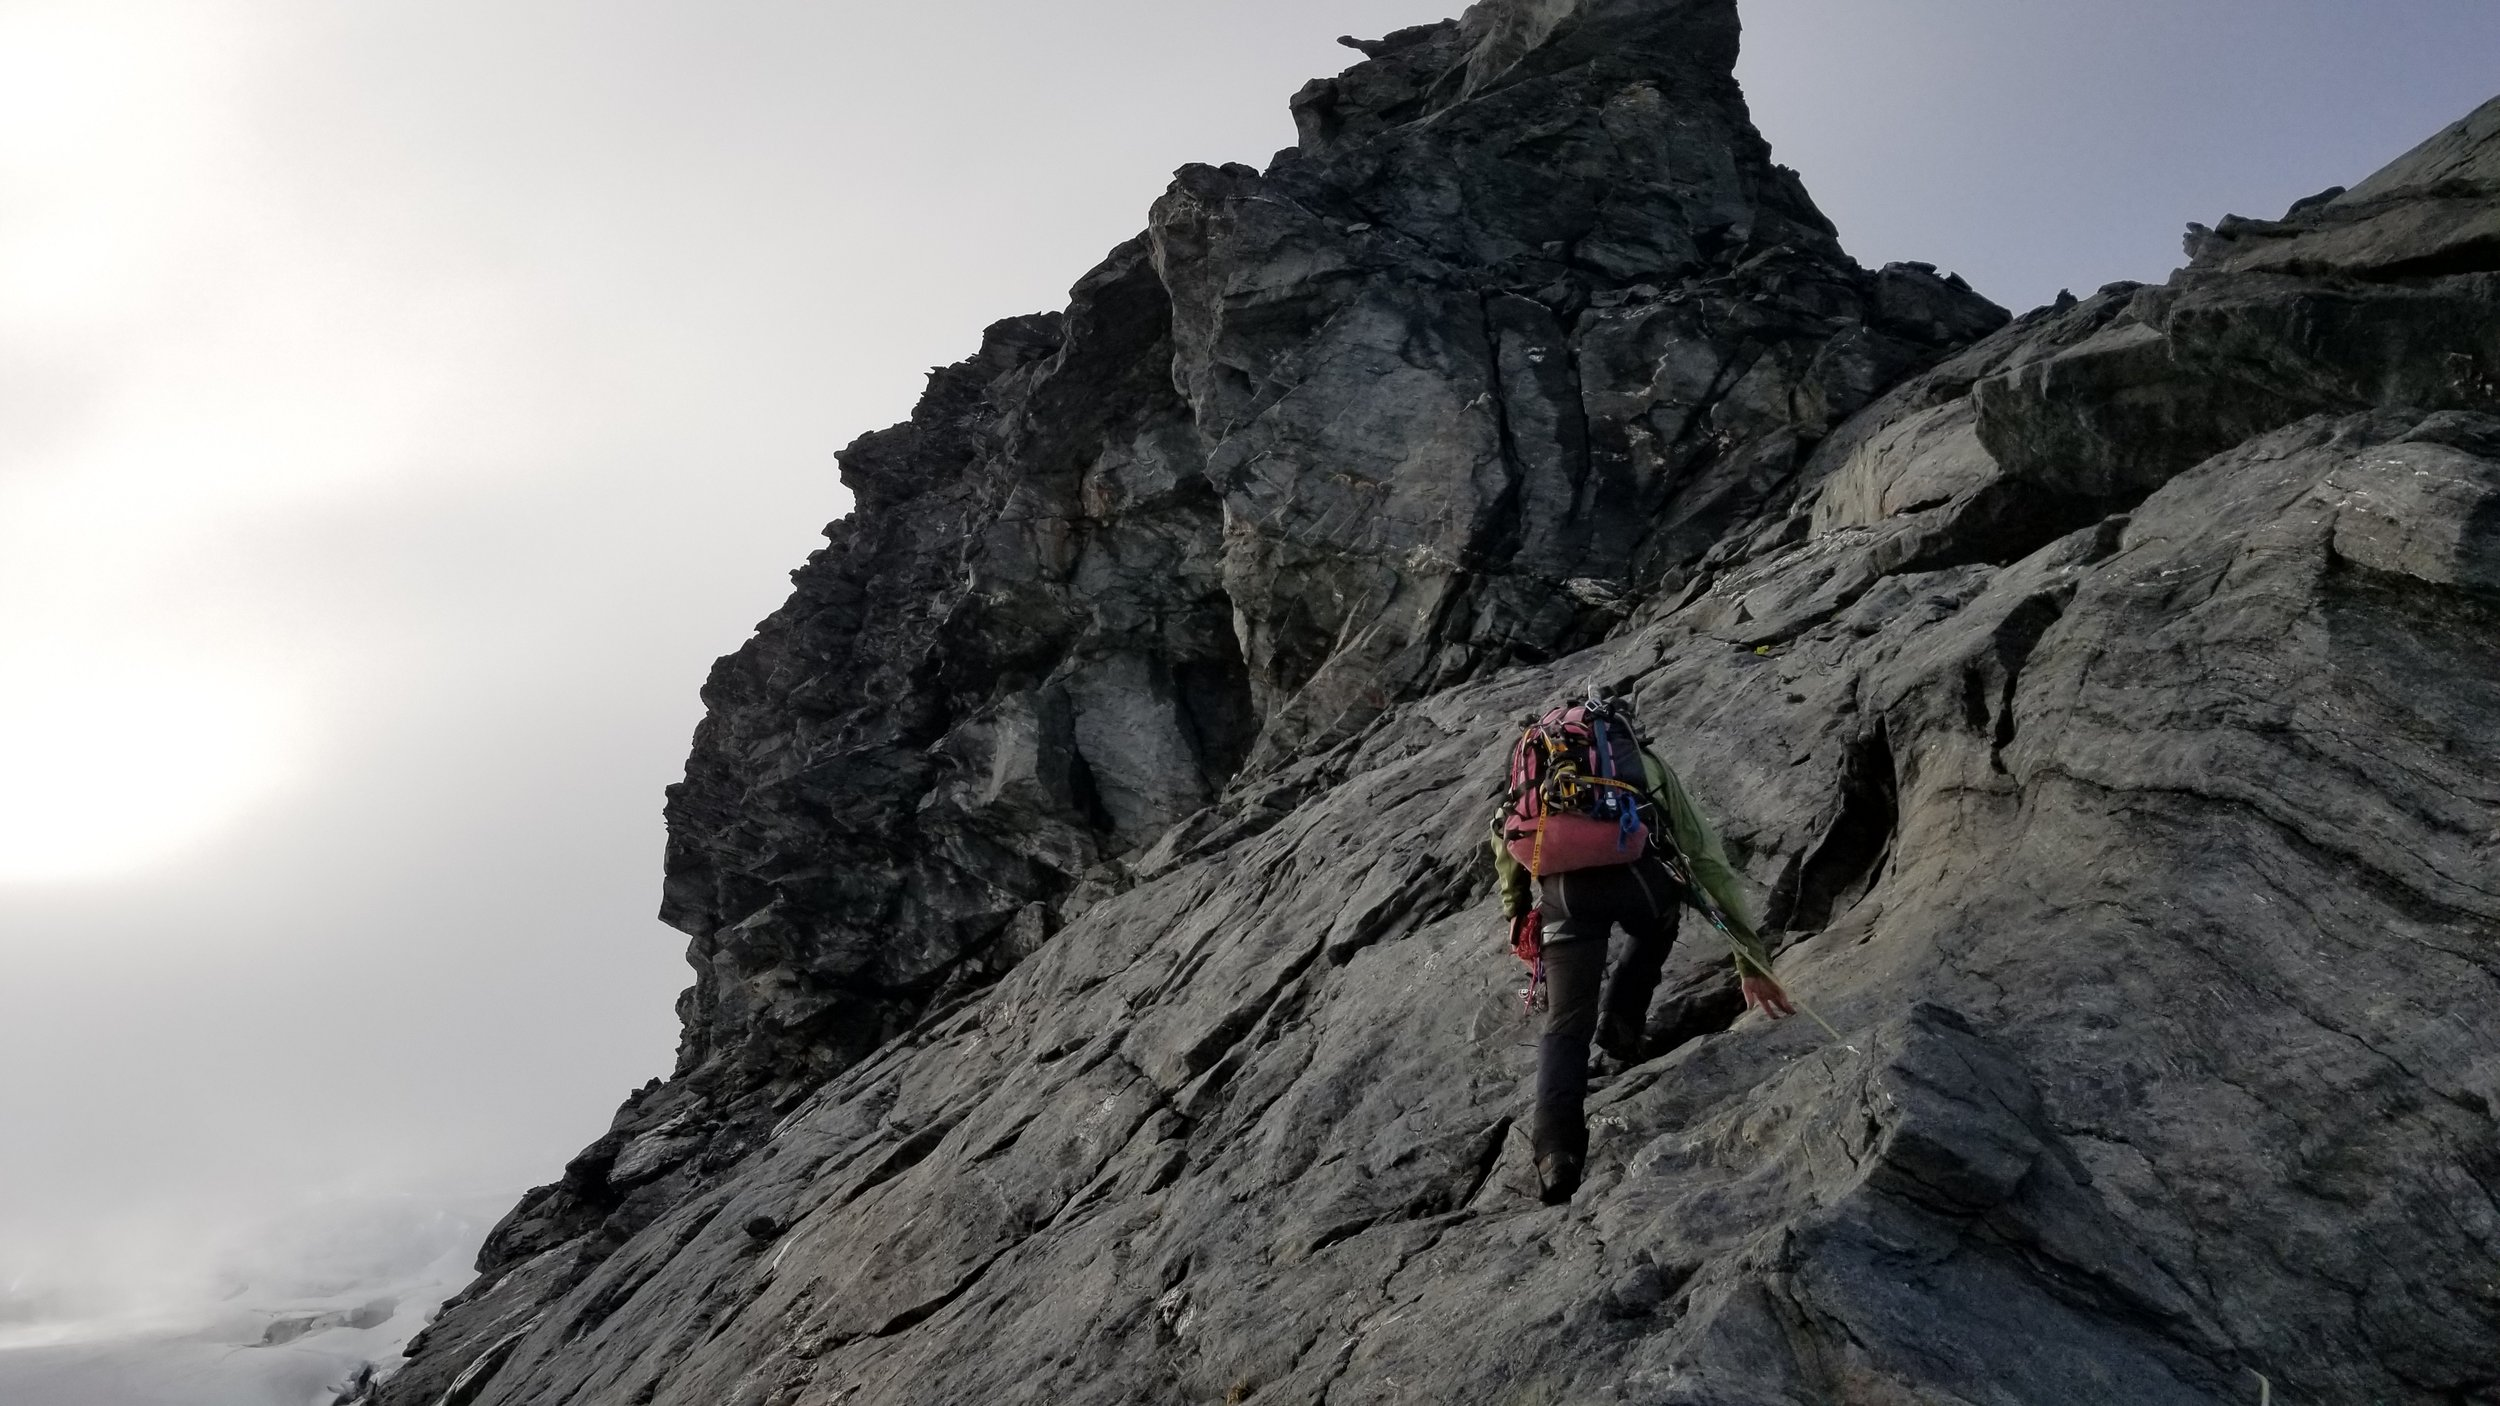 Approaching the buttress